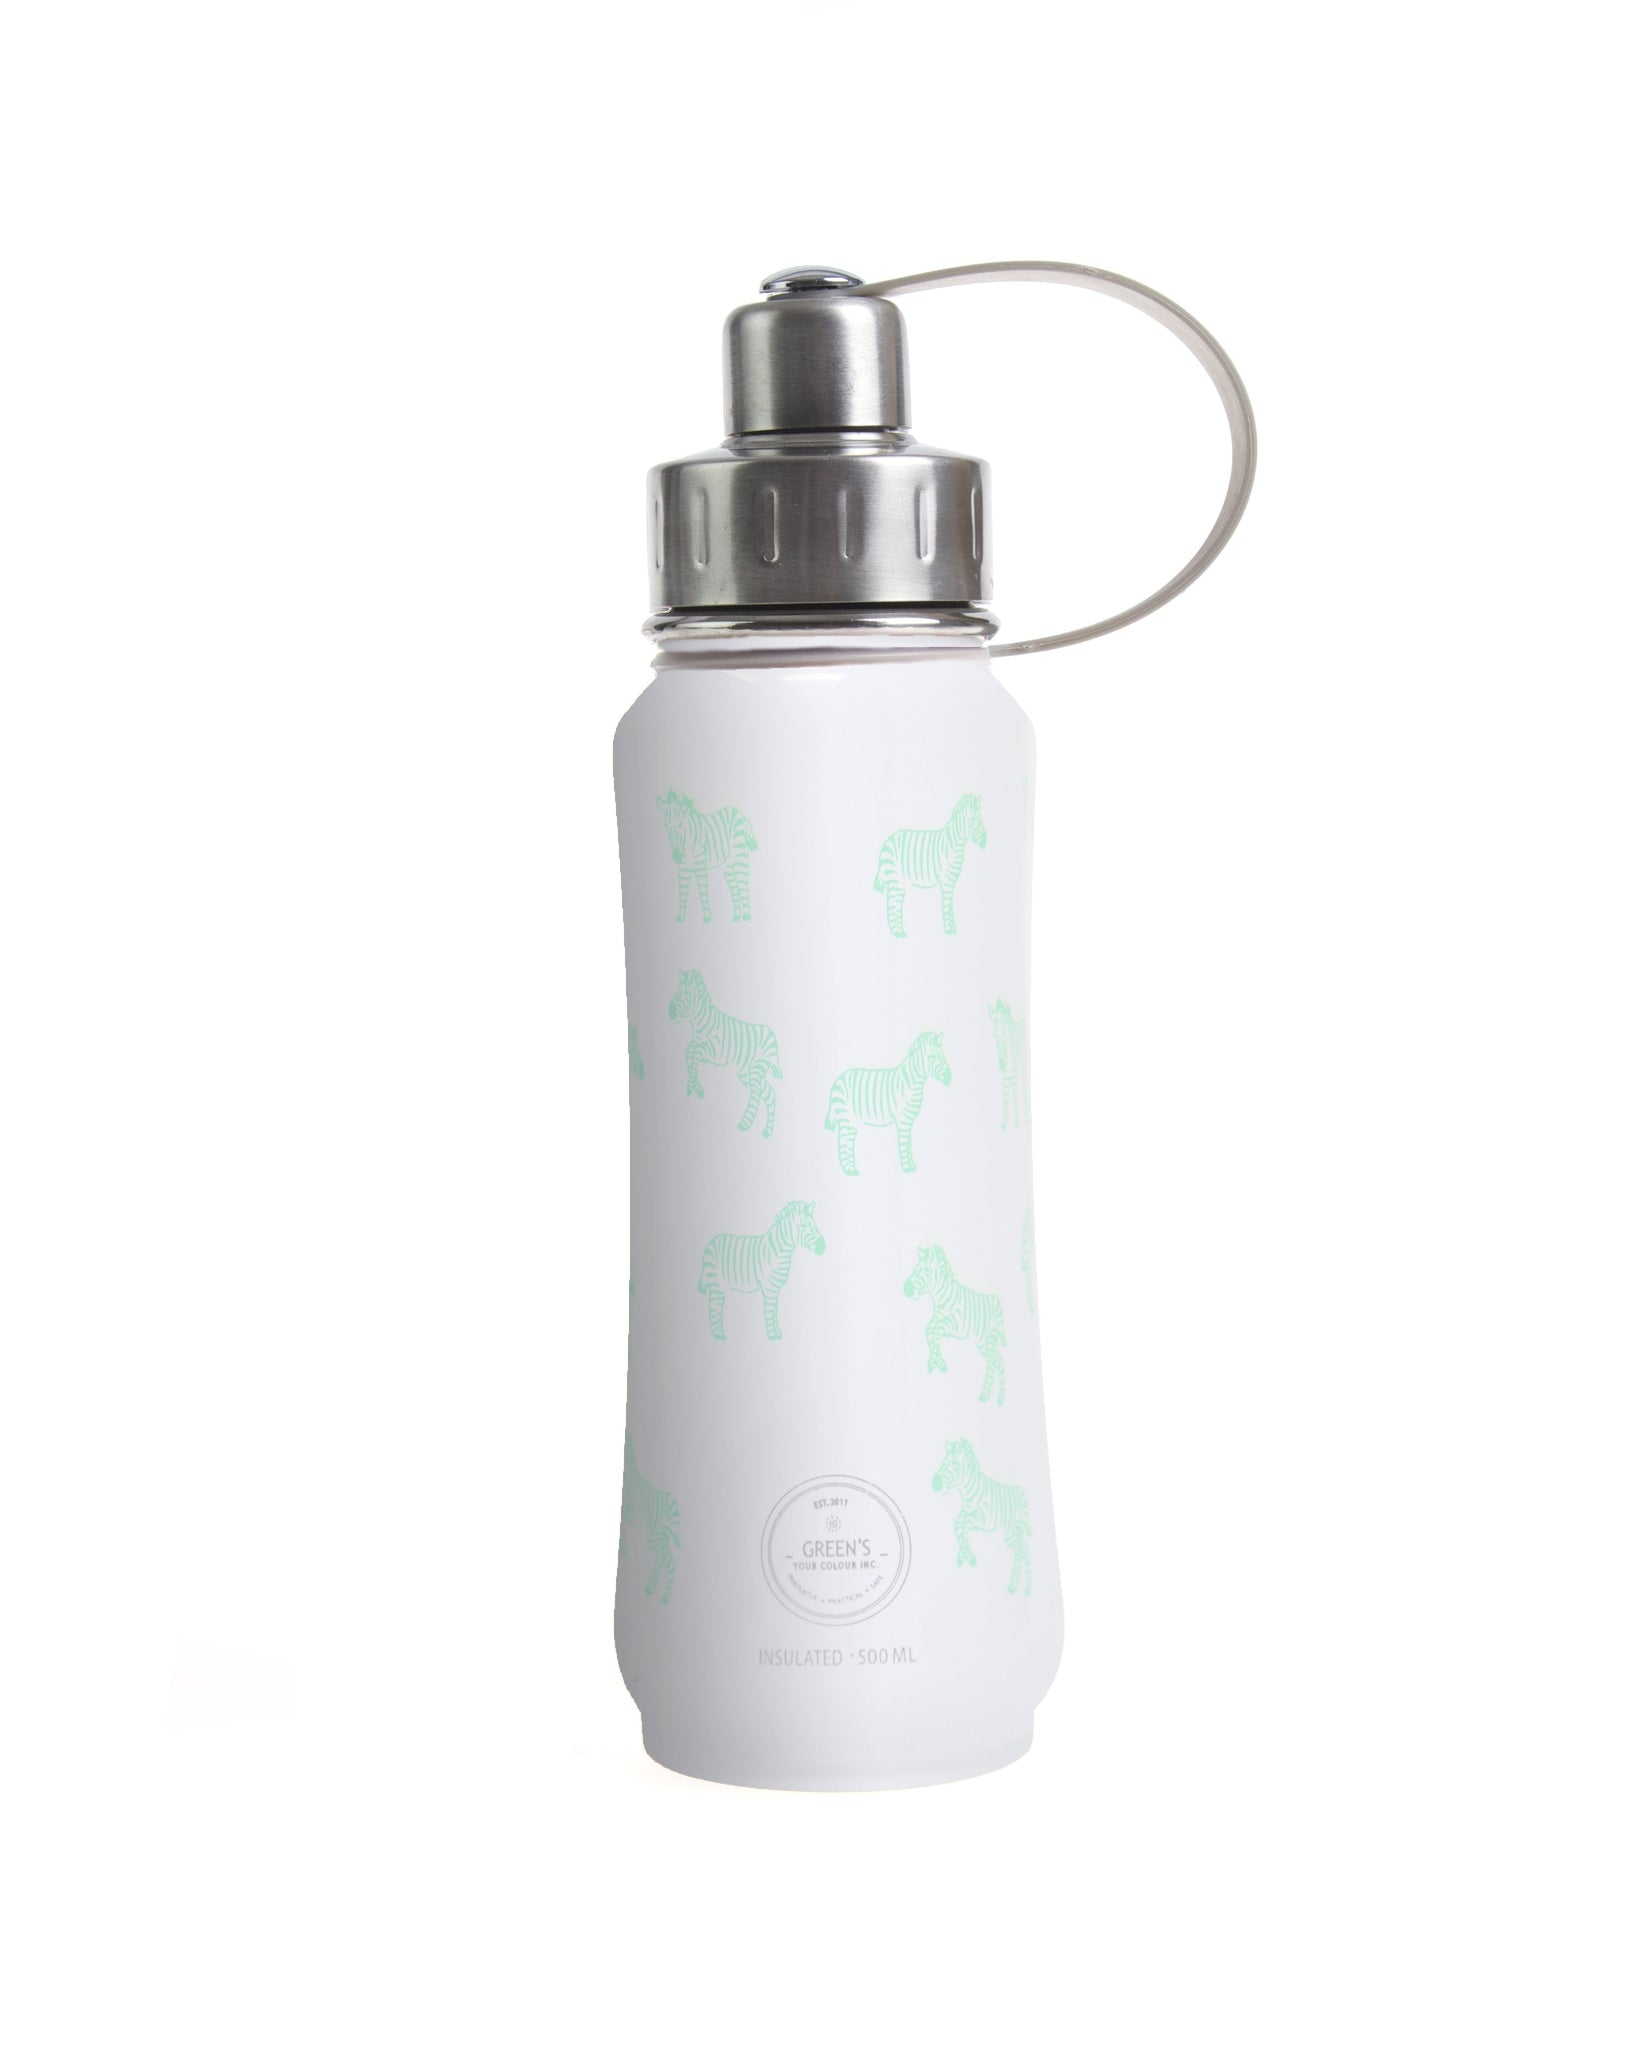 500 ml White Zippy Zebra insulated vacuum stainless steel leak-proof water bottle carrying handle silver lid, zebra bottle, animal bottle, cute bottles, stylish bottle, bottles for zoo, wholesale bottles, fun bottles, kids bottles, green's your colour, gyc bottle